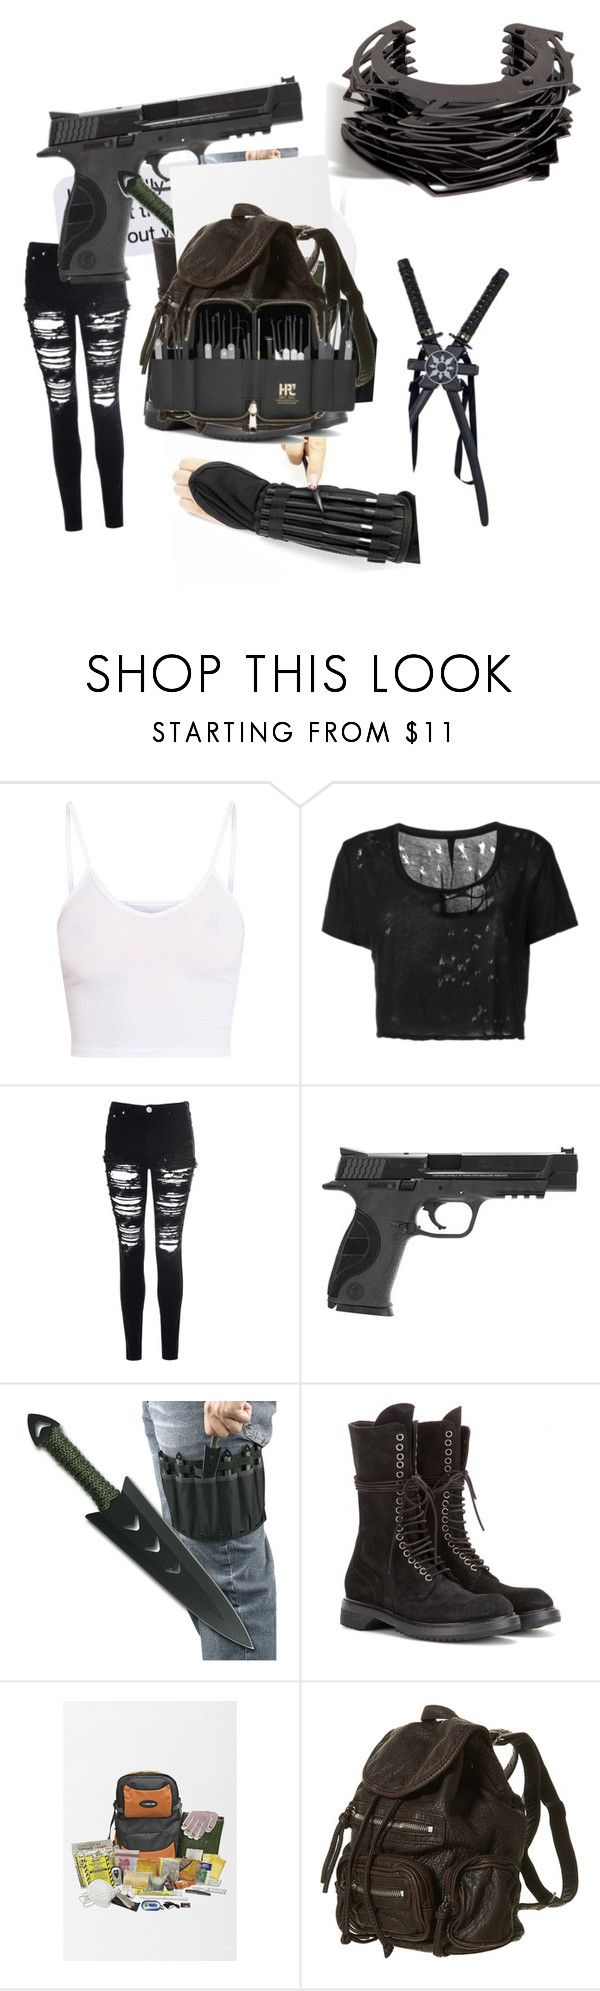 """Untitled #90"" by randommorelikefandom on Polyvore featuring Unravel, Glamorous, Smith & Wesson, Rick Owens and Lynn Ban"